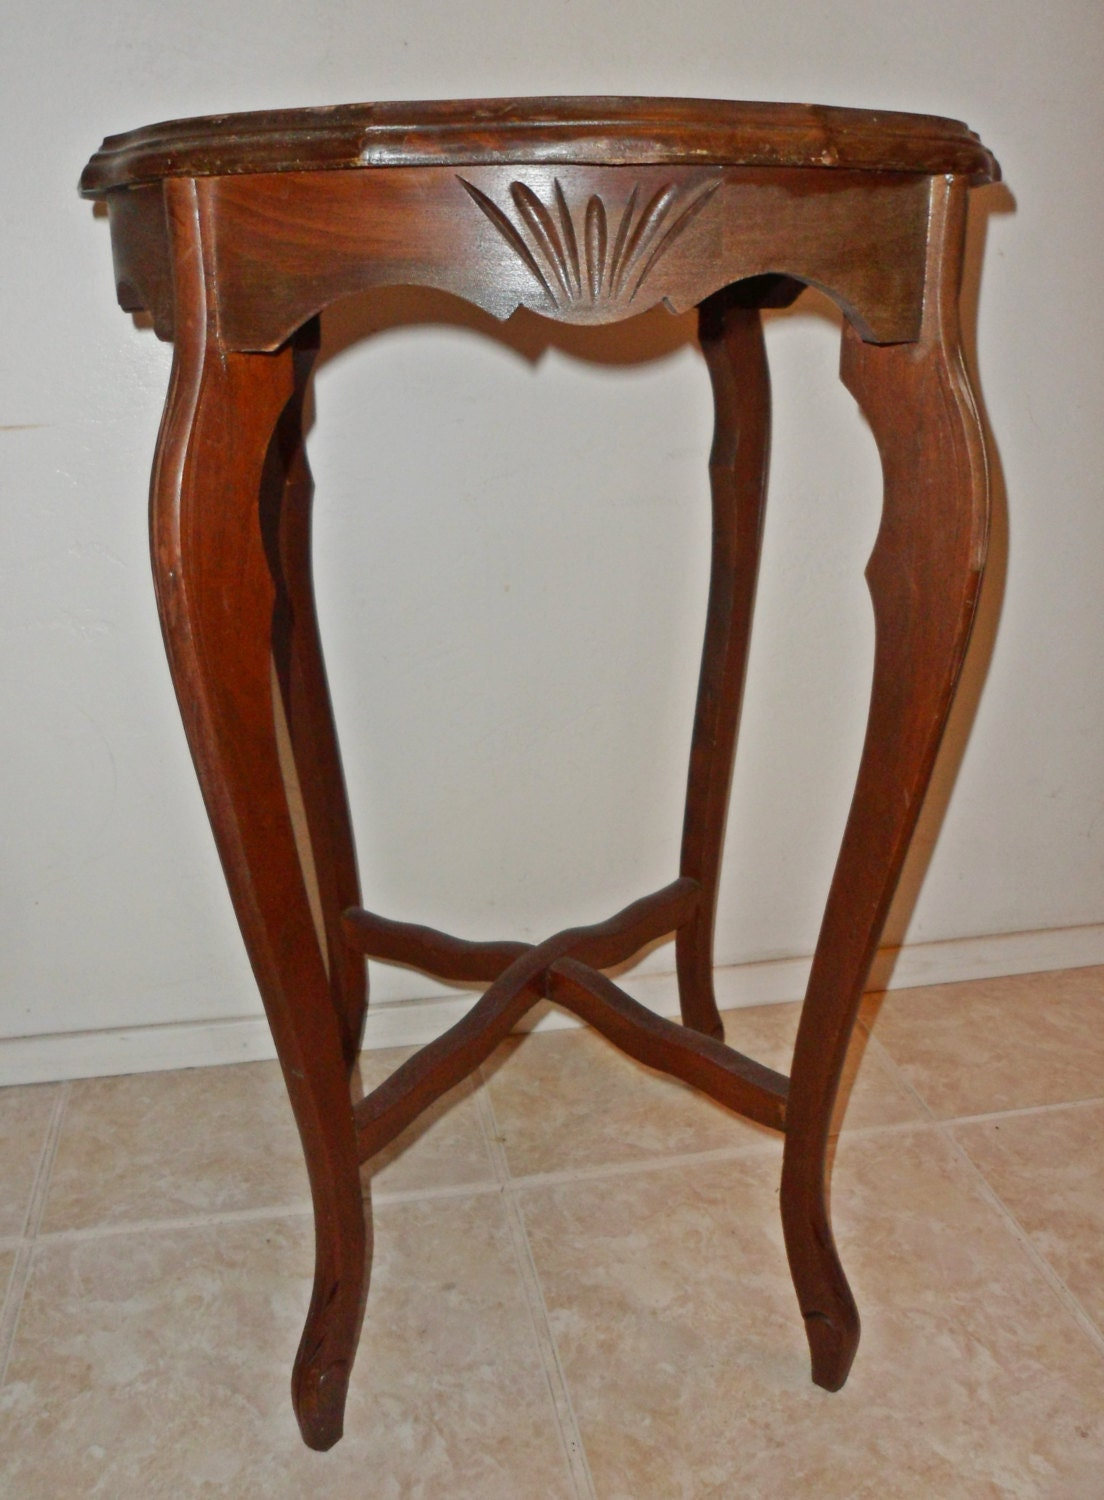 Antique inlaid carved wood french country side table by